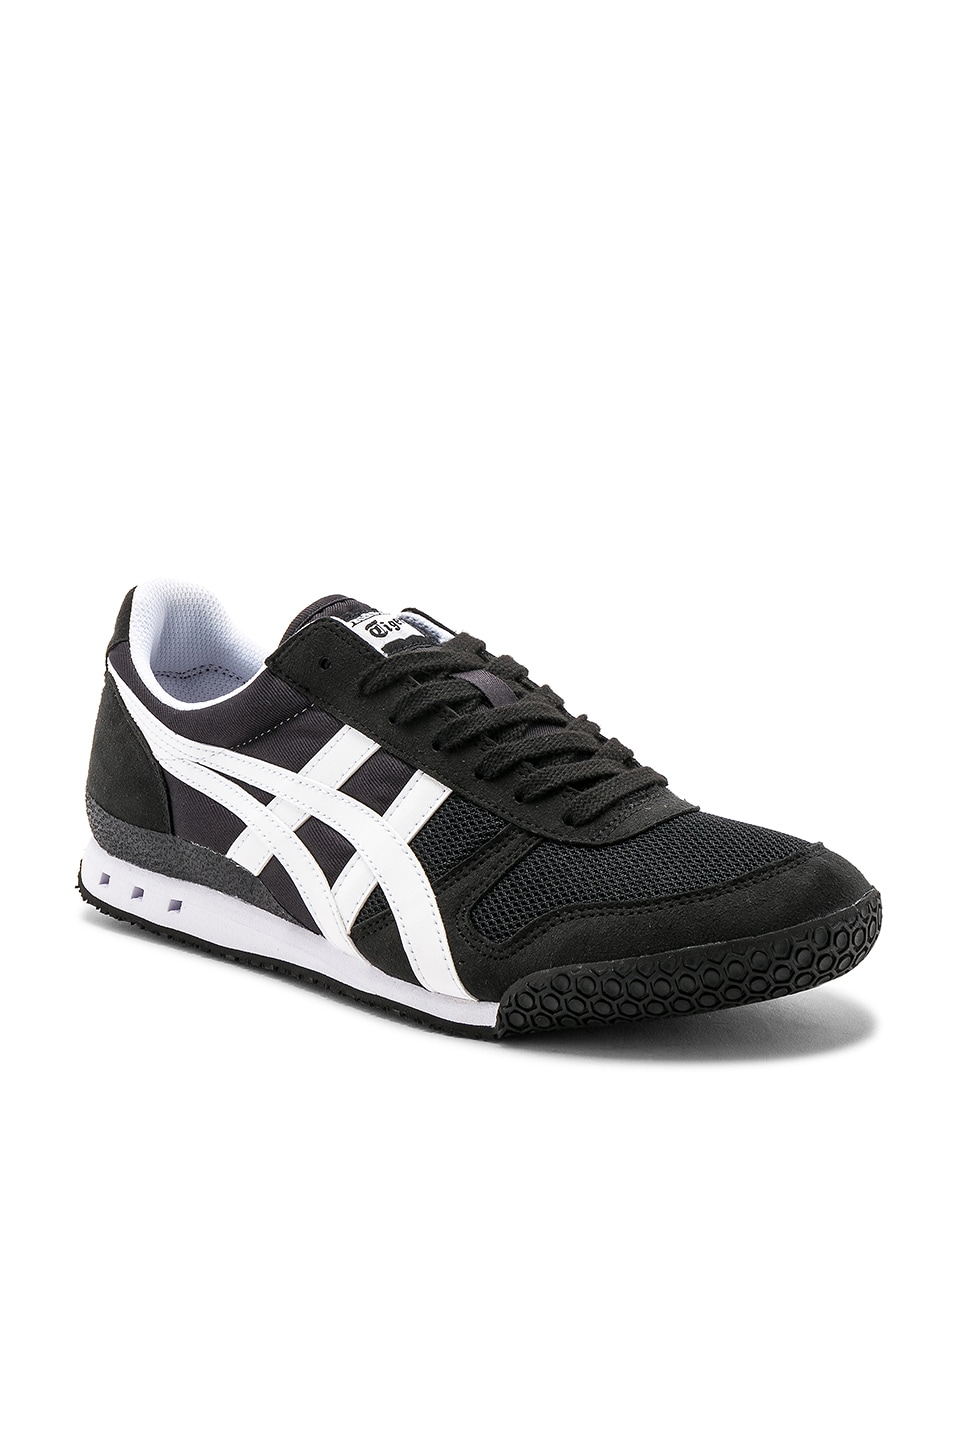 Onitsuka Tiger Ultimate 81 in Black & White